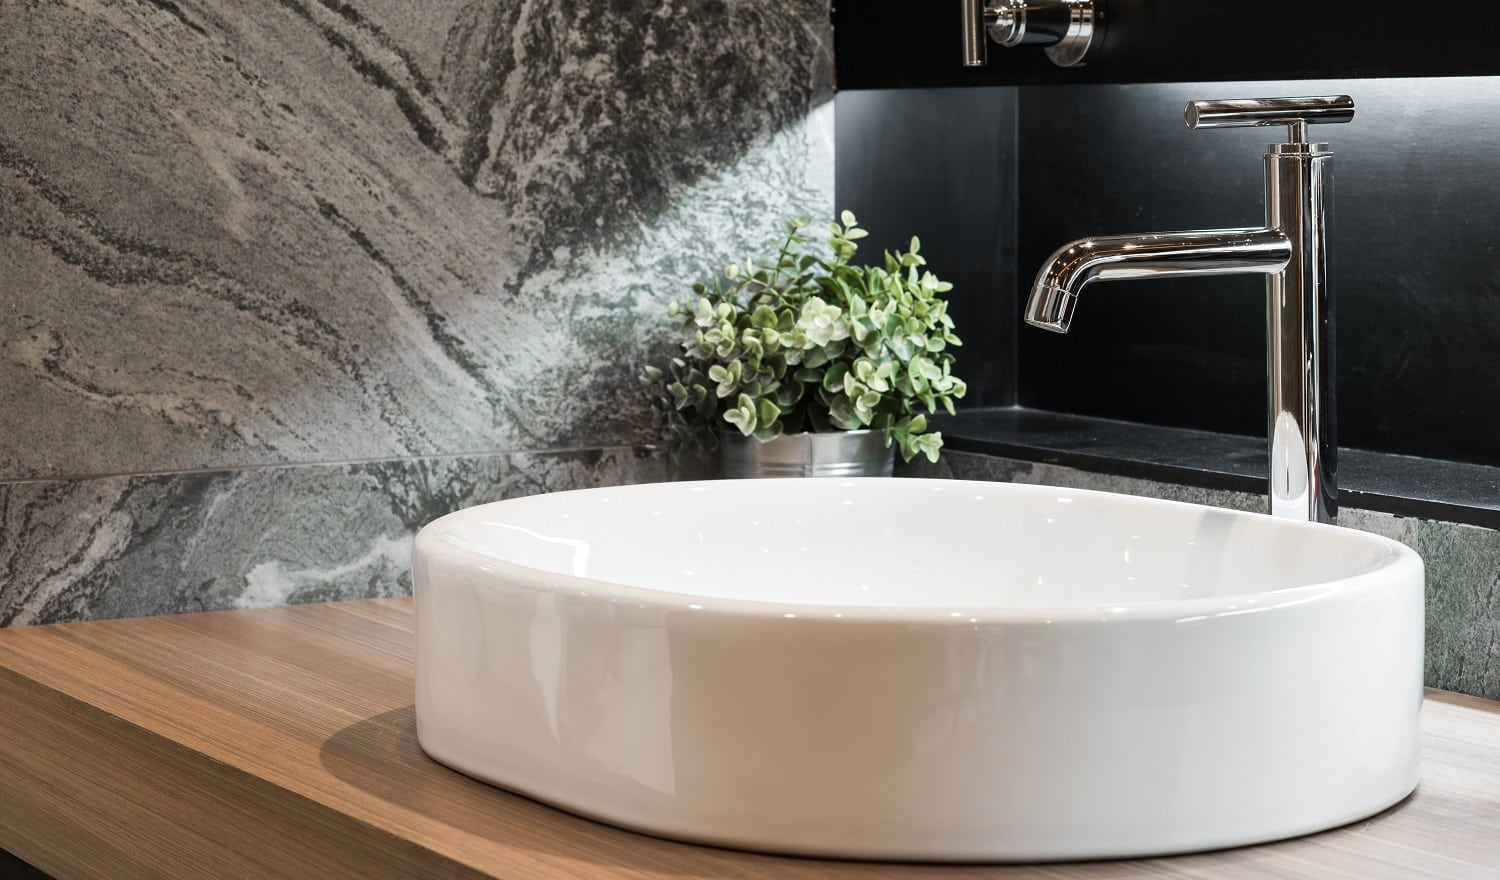 13 best utility sink faucet of 2021